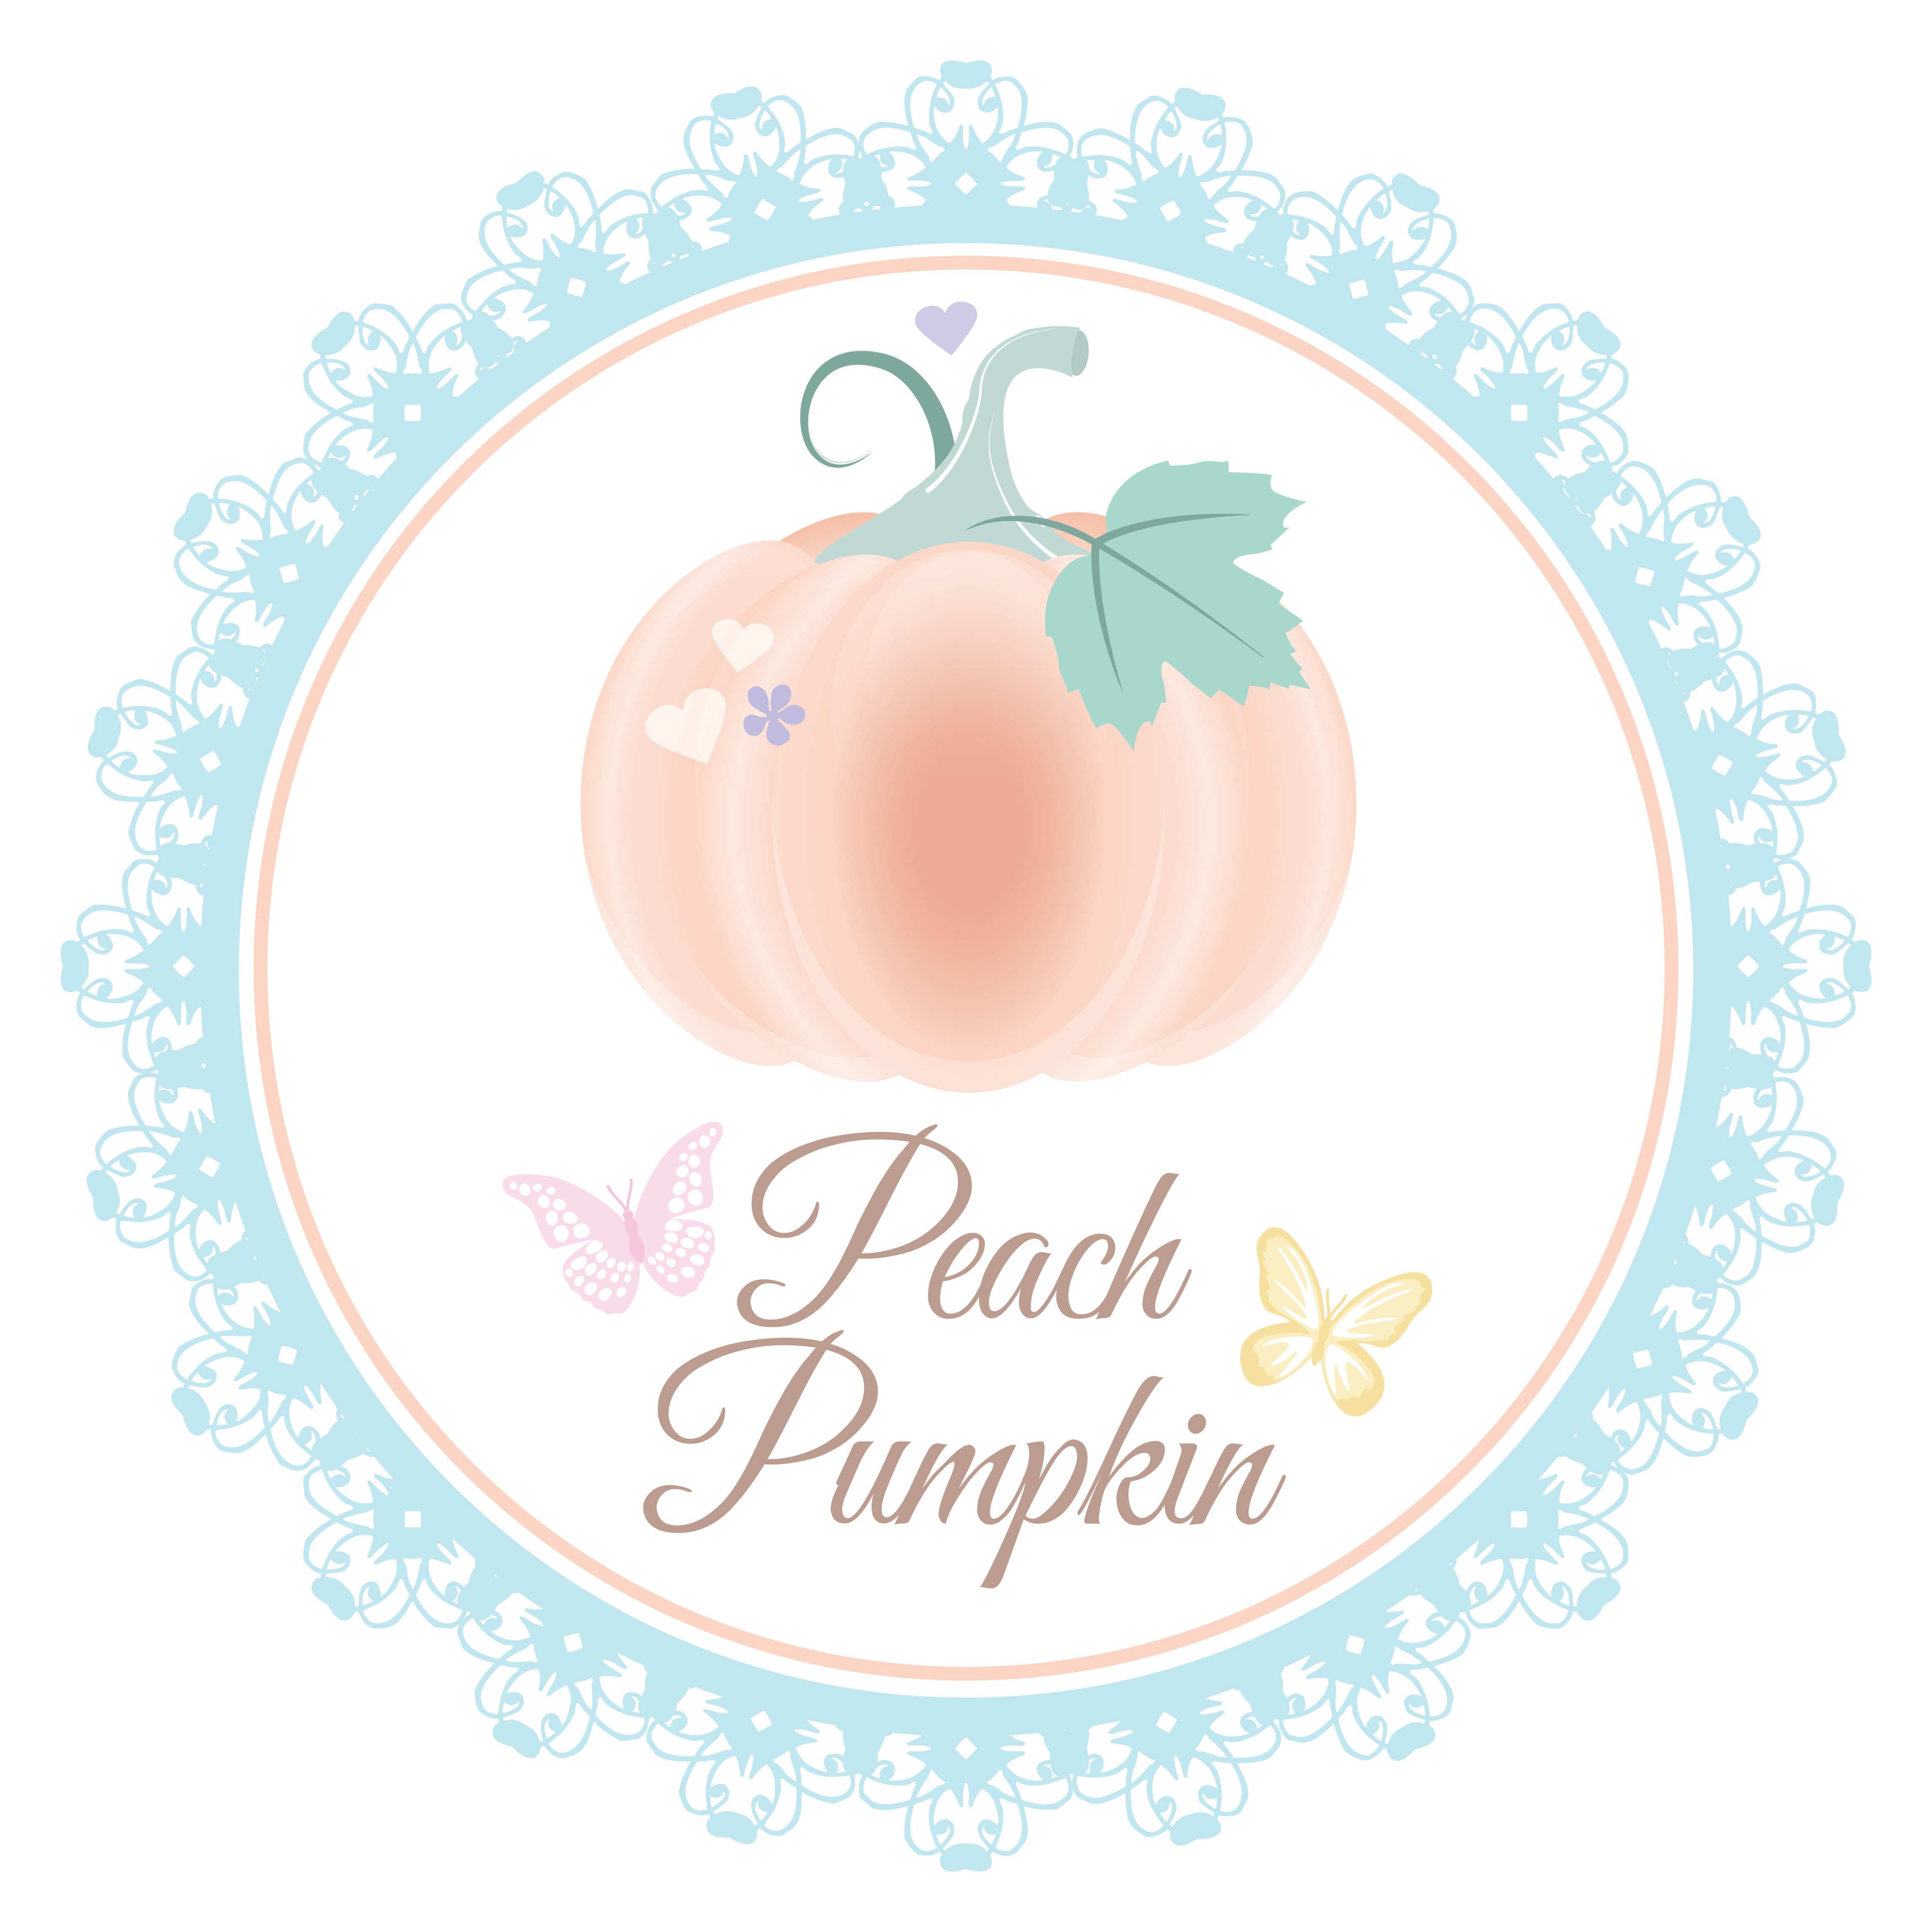 Peach Pumpkin